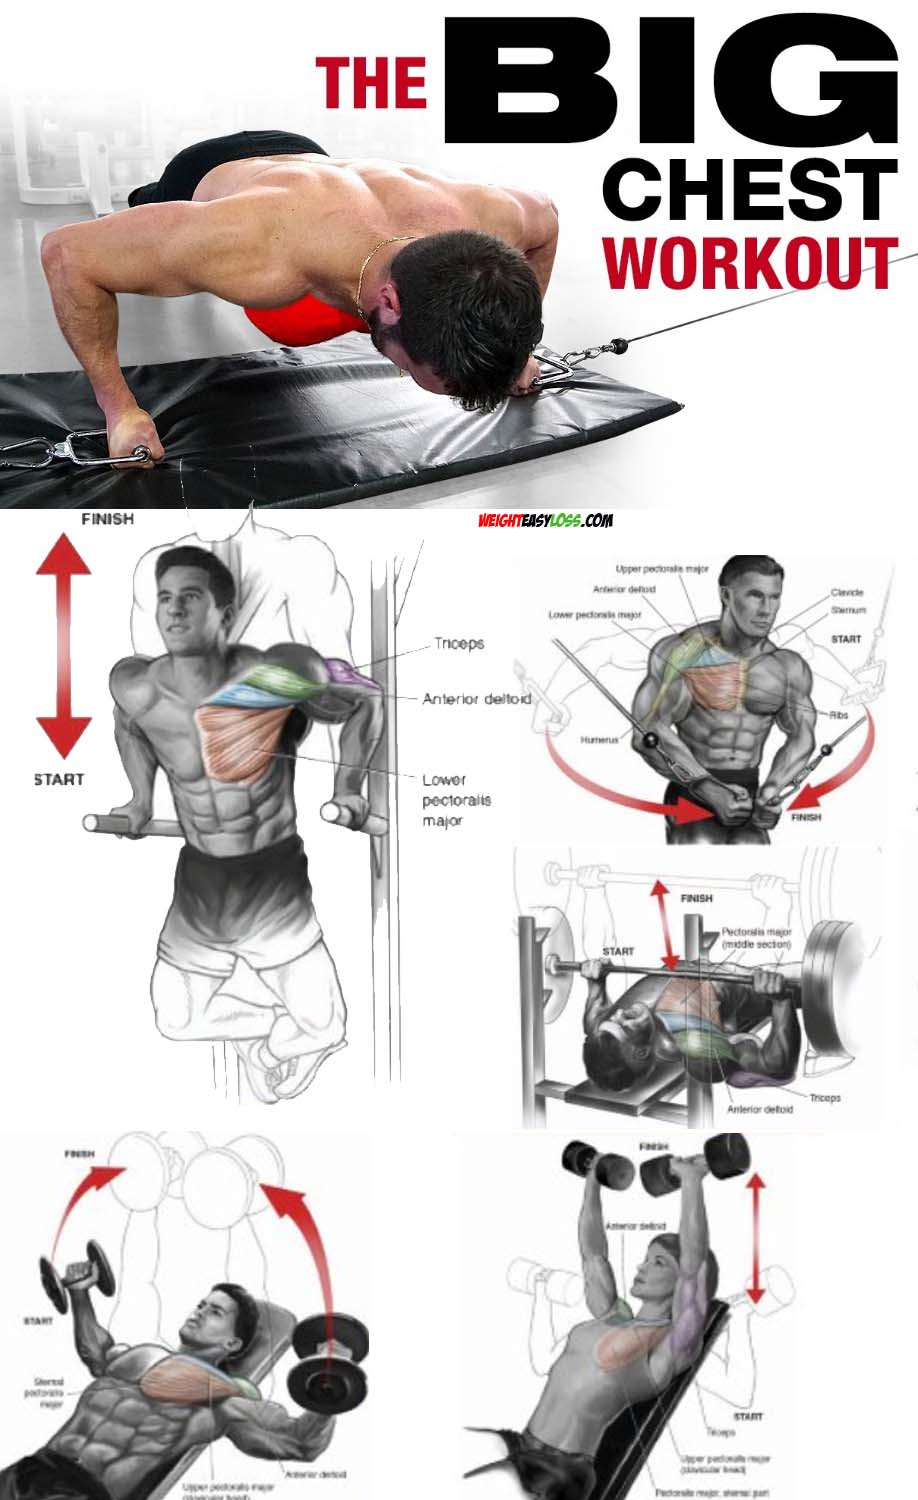 The Big Chest Workout